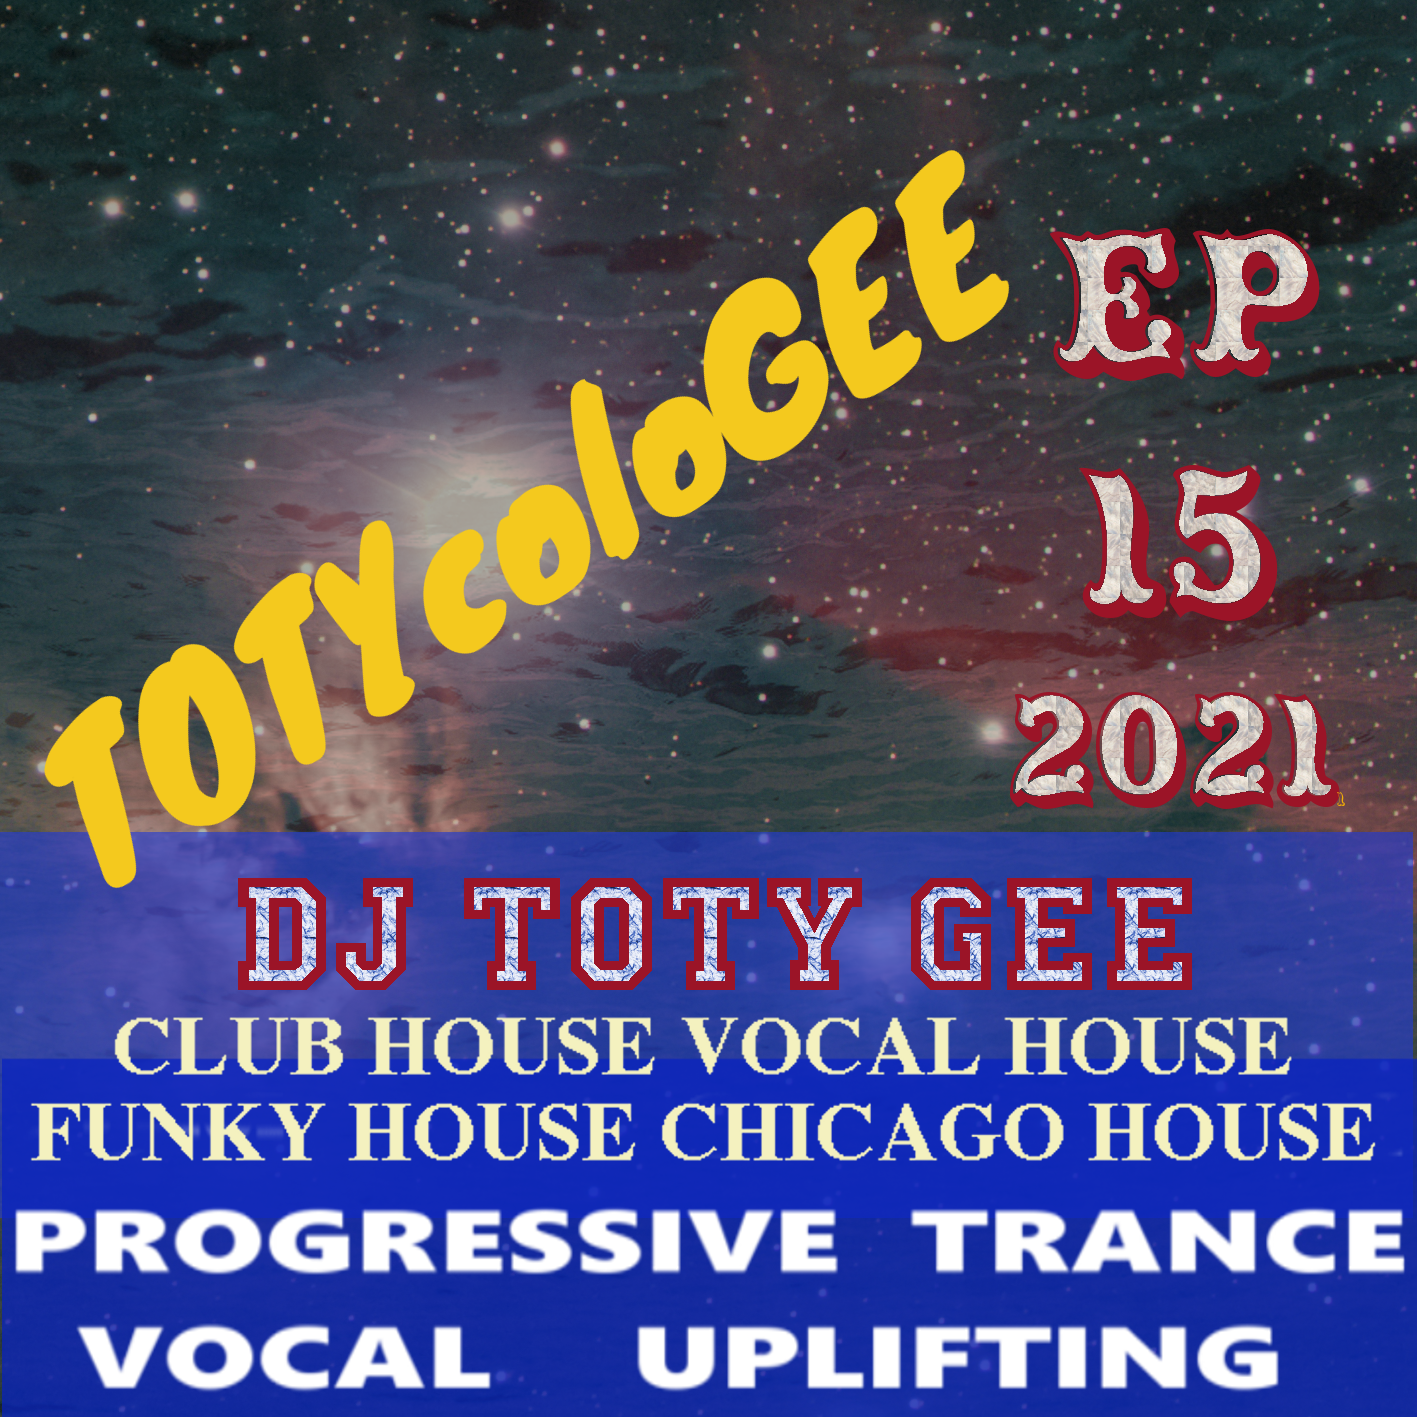 TOTYcoloGEE 2021 – 15 – DJ TOTY GEE Live